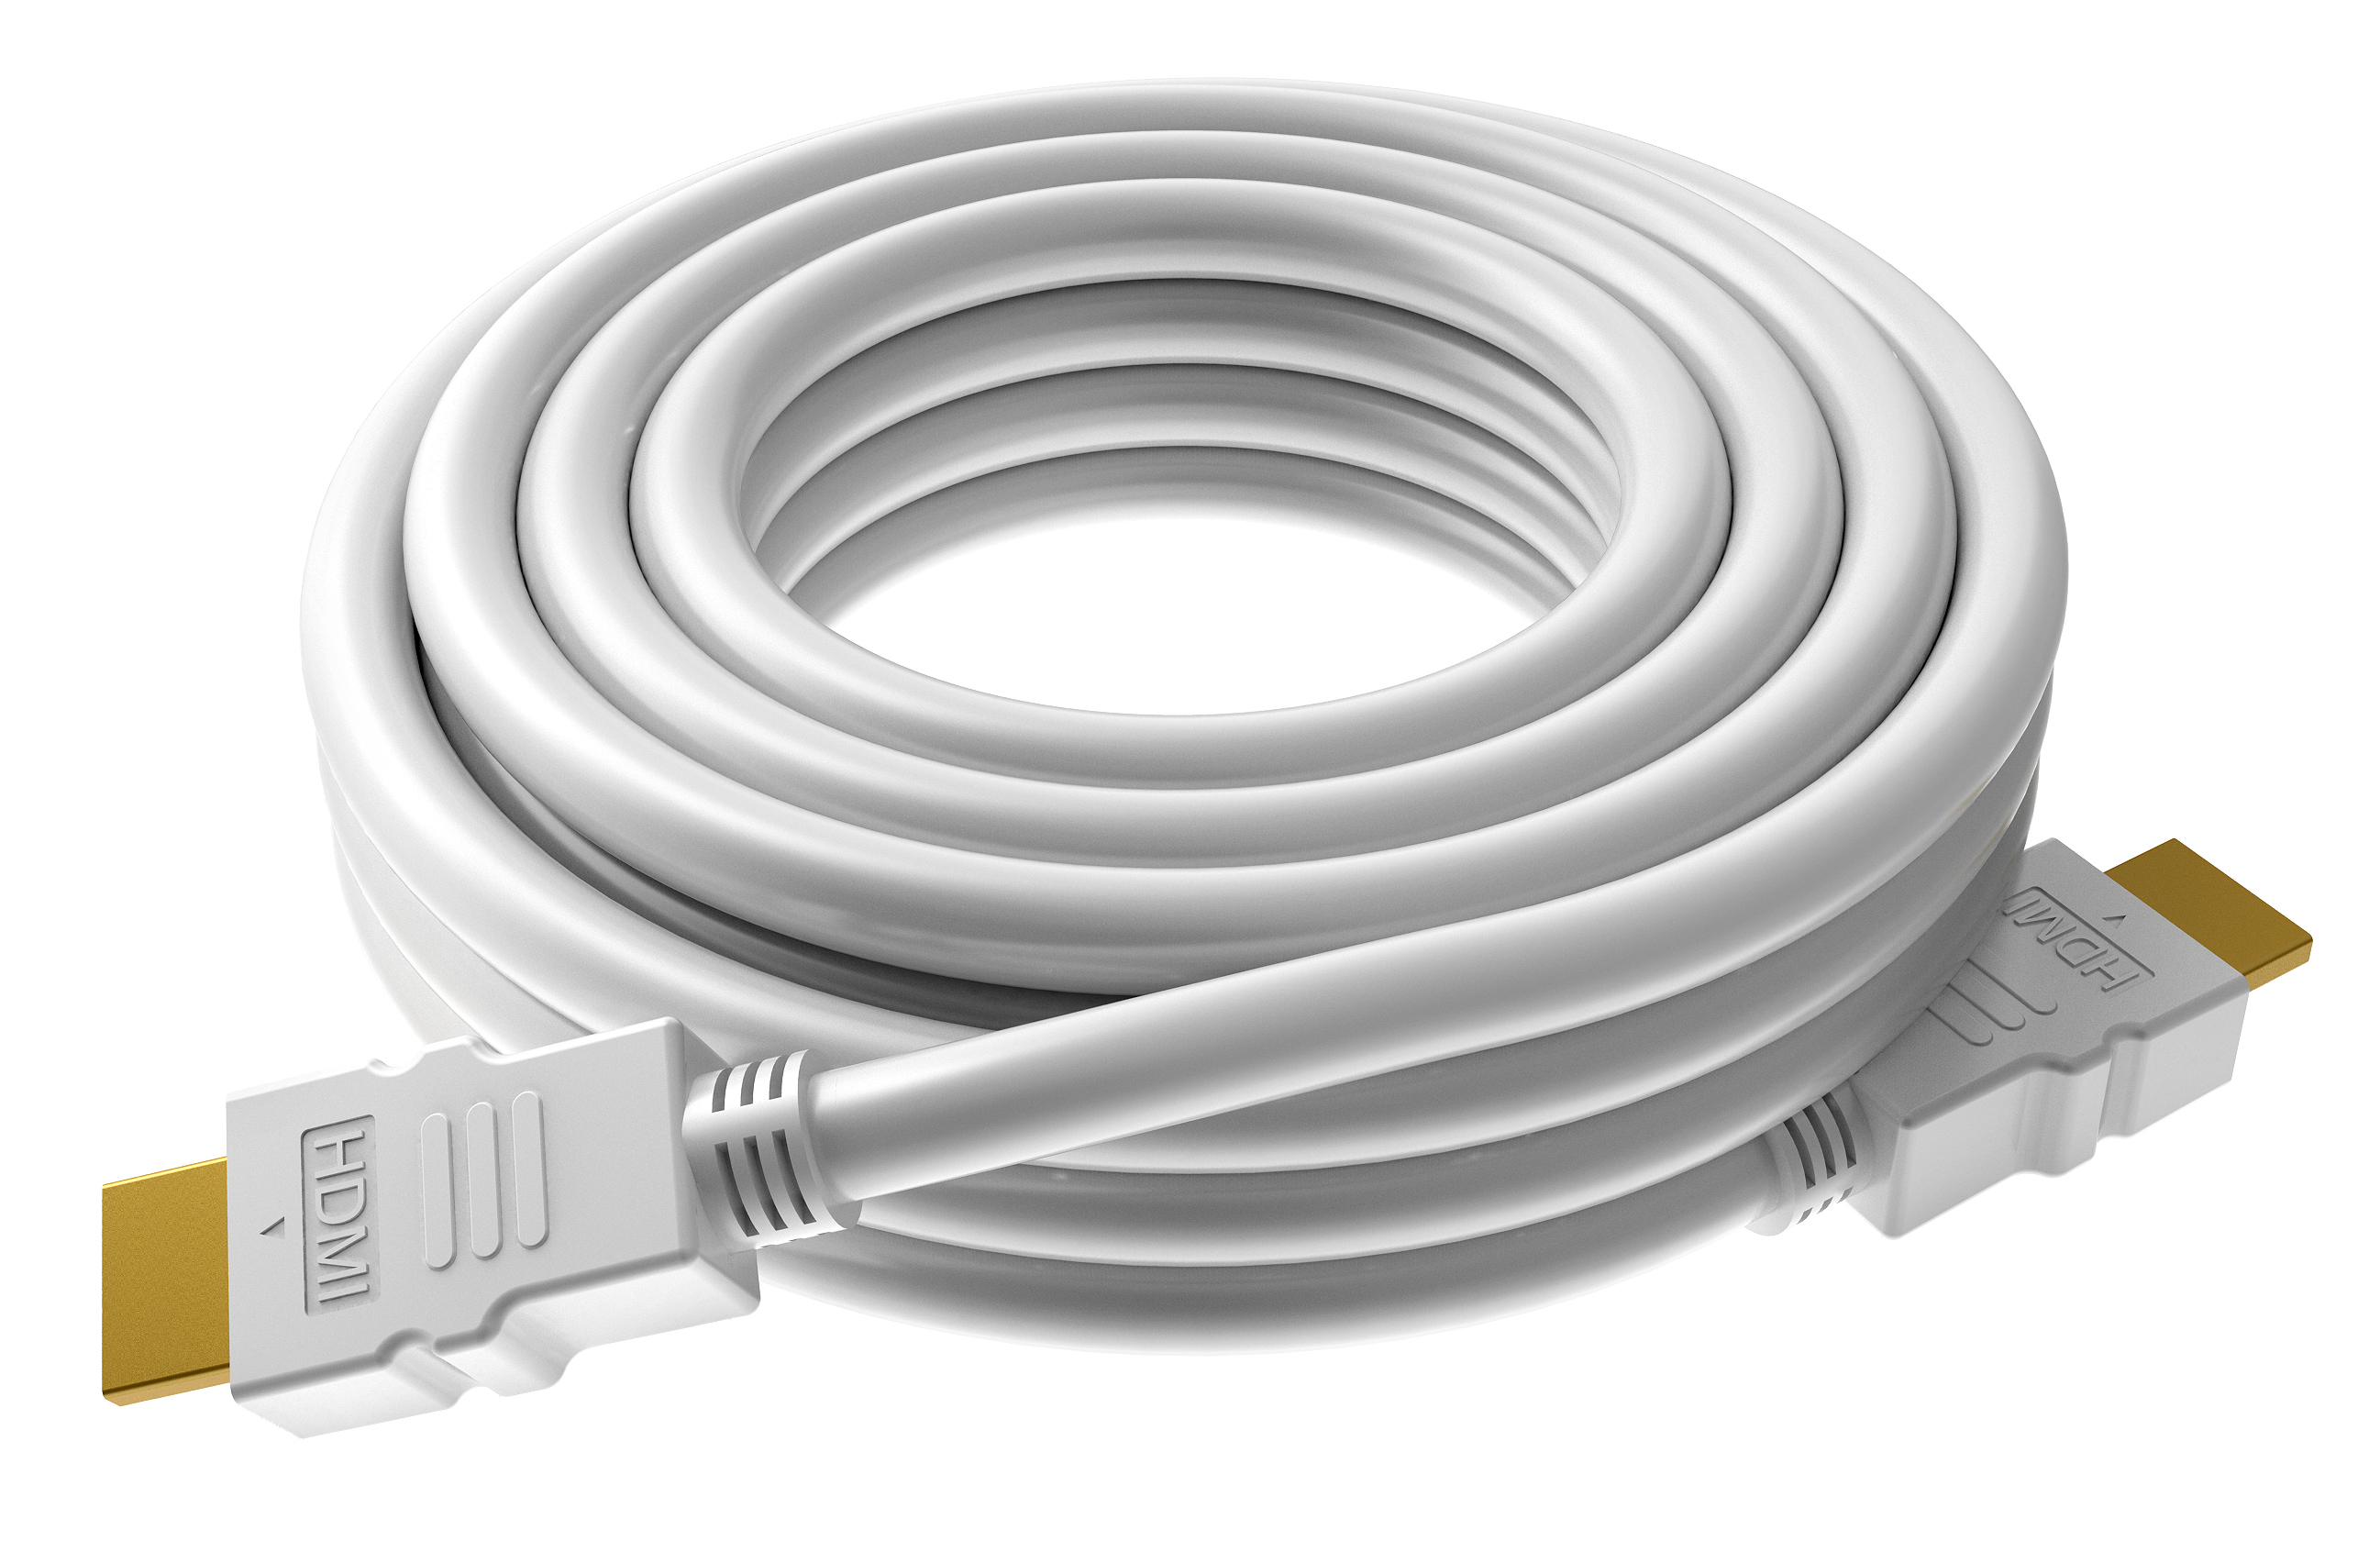 Vision TECHCONNECT SPARE 15M HDMI CABLE Engineered connectivity solution, White, 4K compliant, High-Speed (